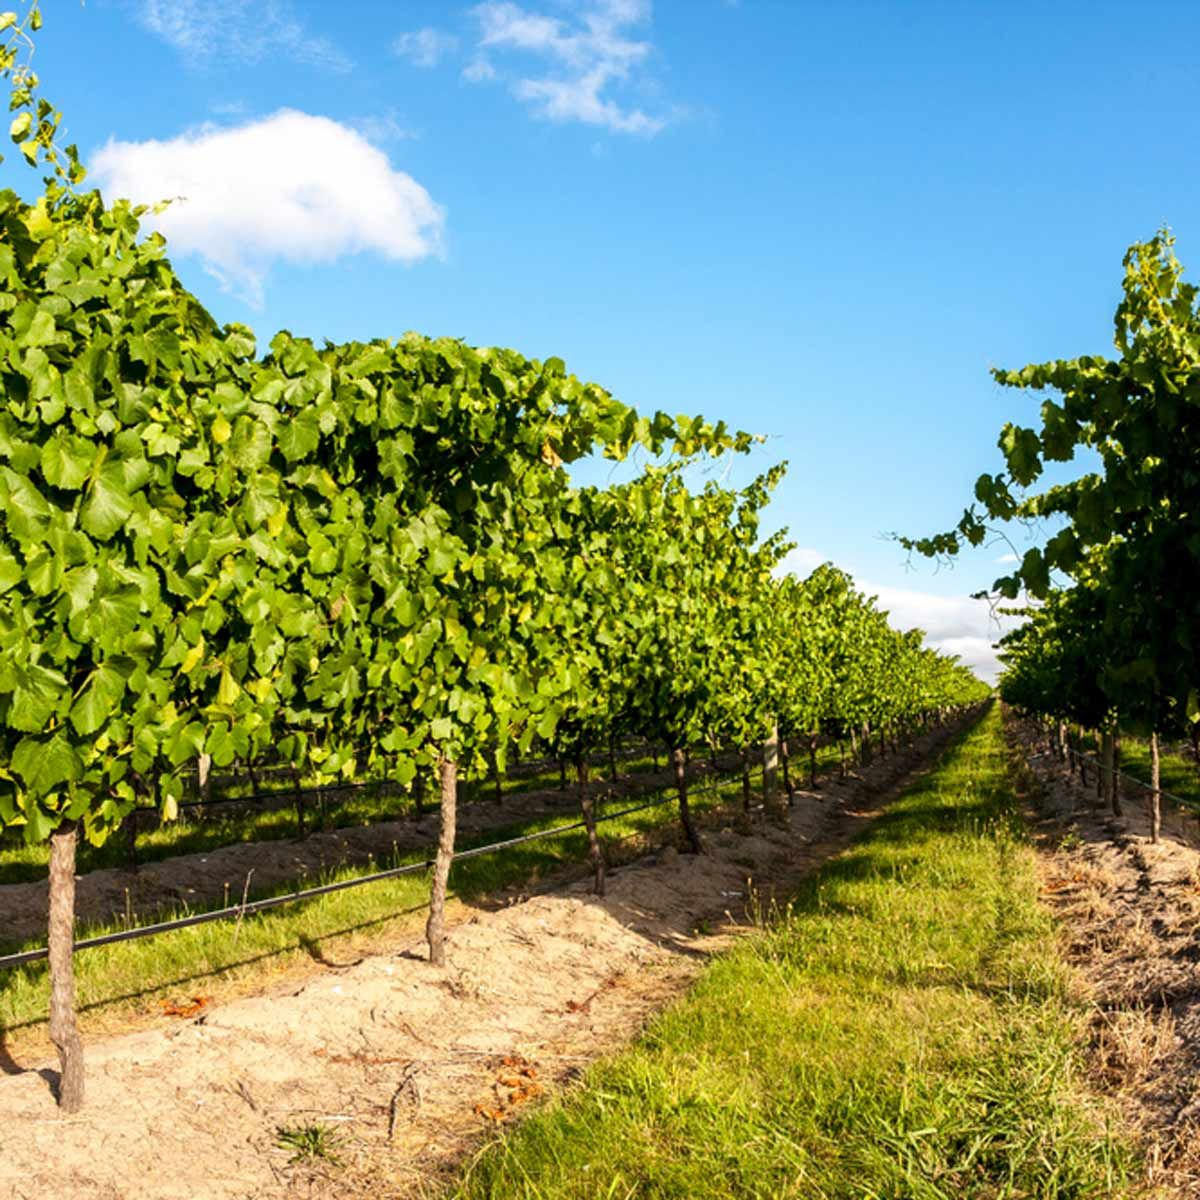 How To Grow Grapes In The Home Garden